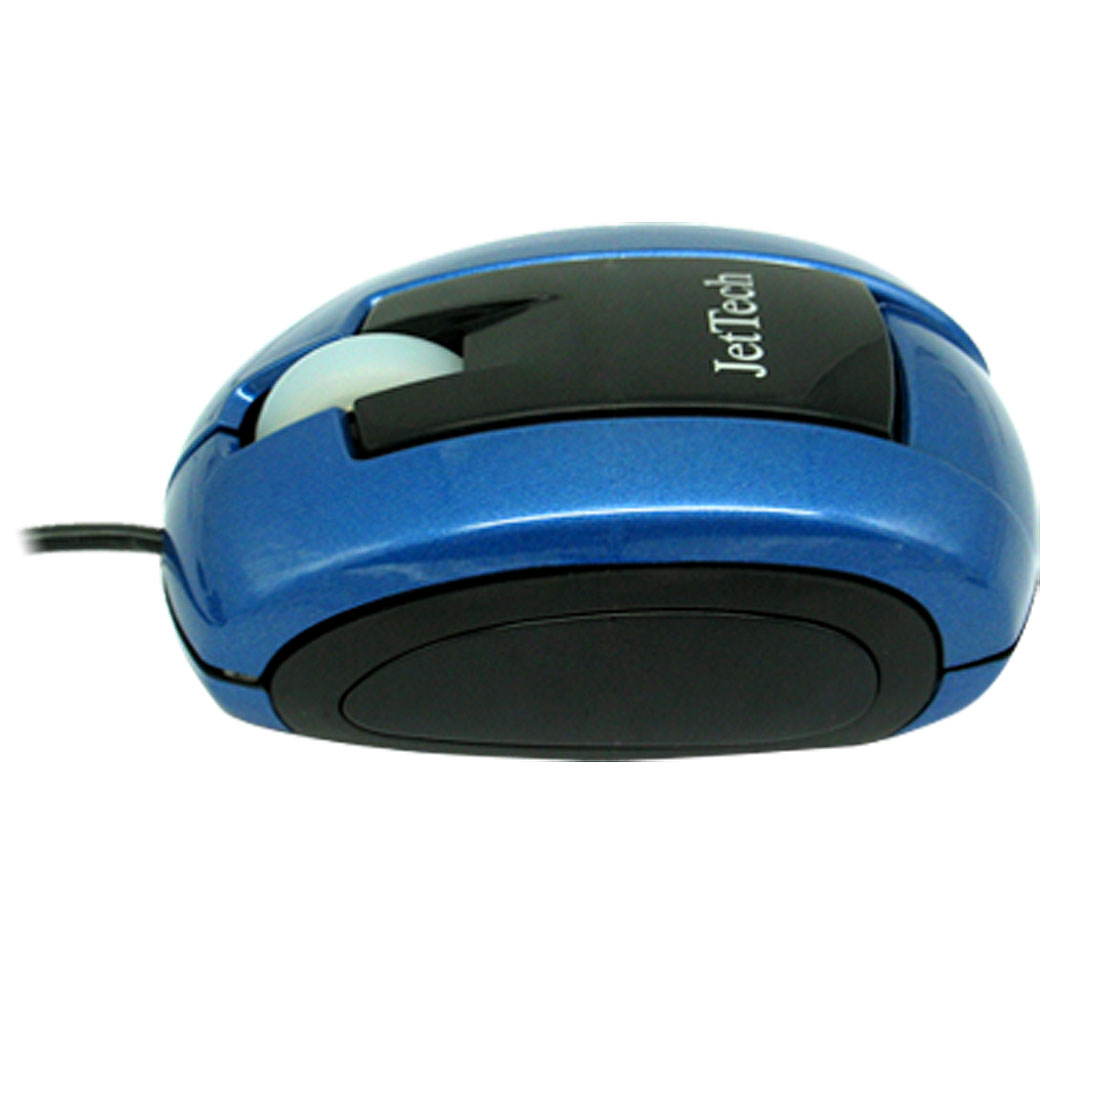 Vista PC Laptop Computer 3D Optical Scroll Wheel PS/2 USB Blue Mouse